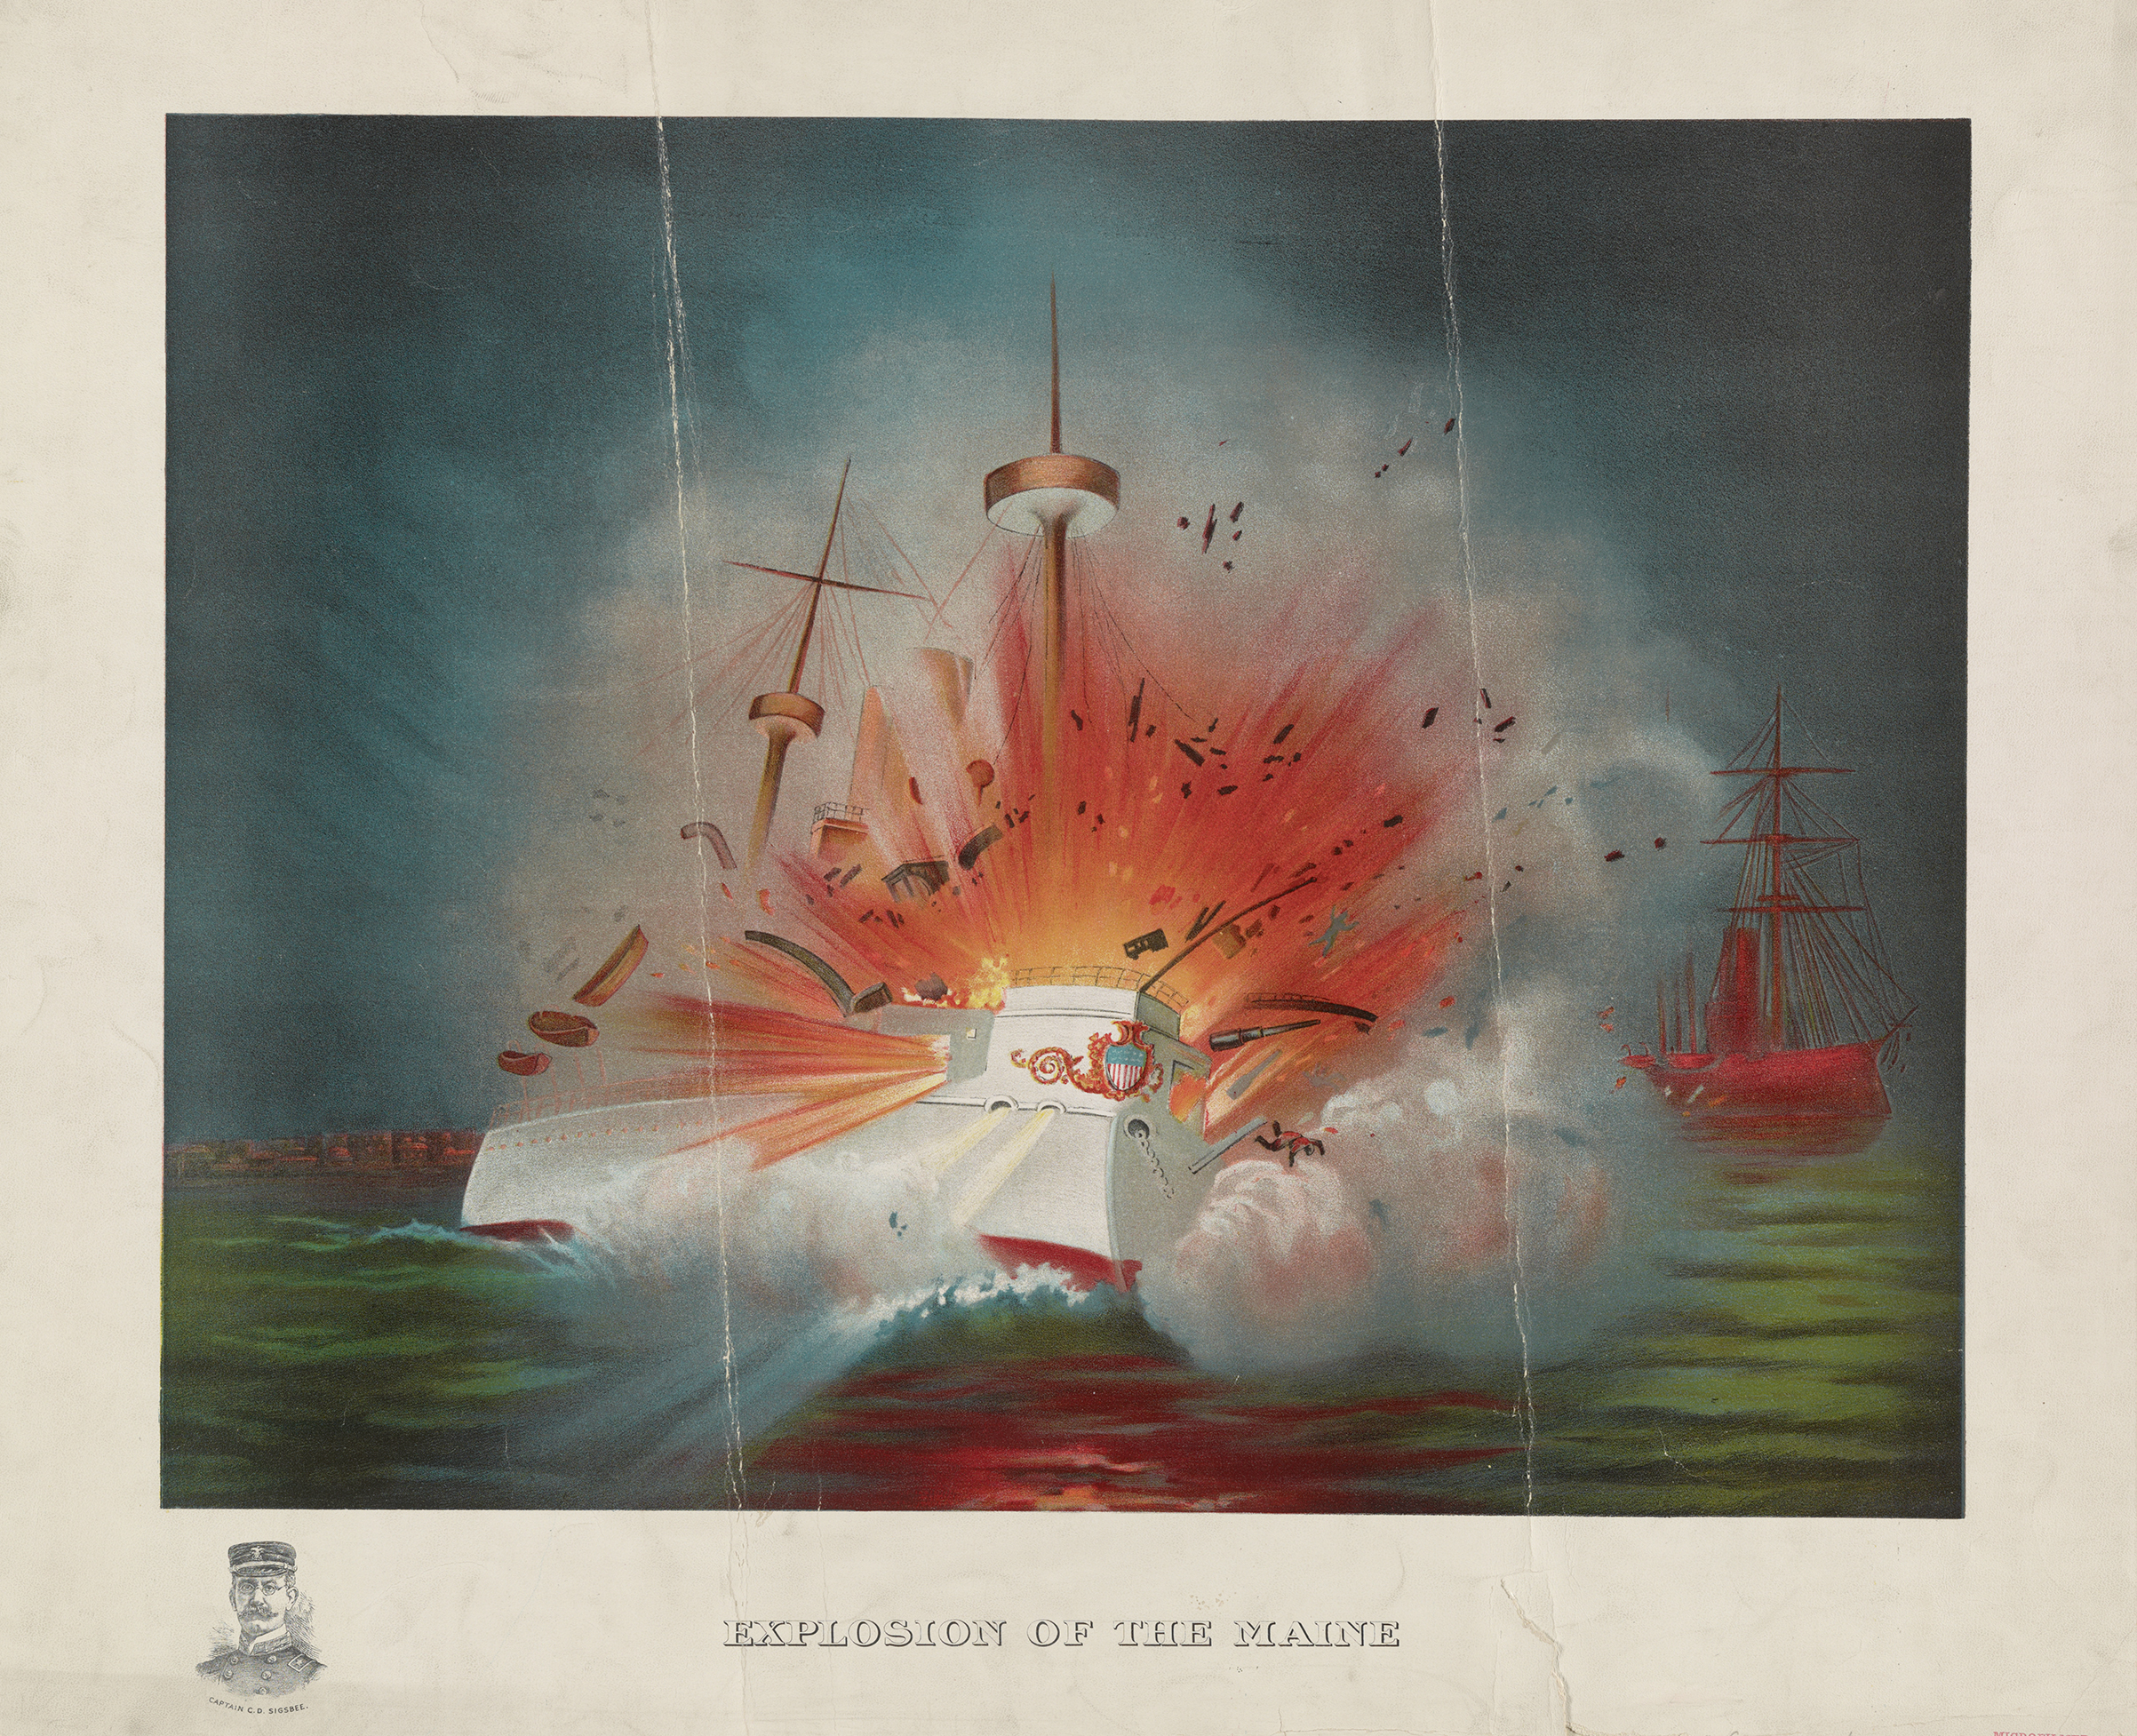 Explosion of the Maine, 1898.